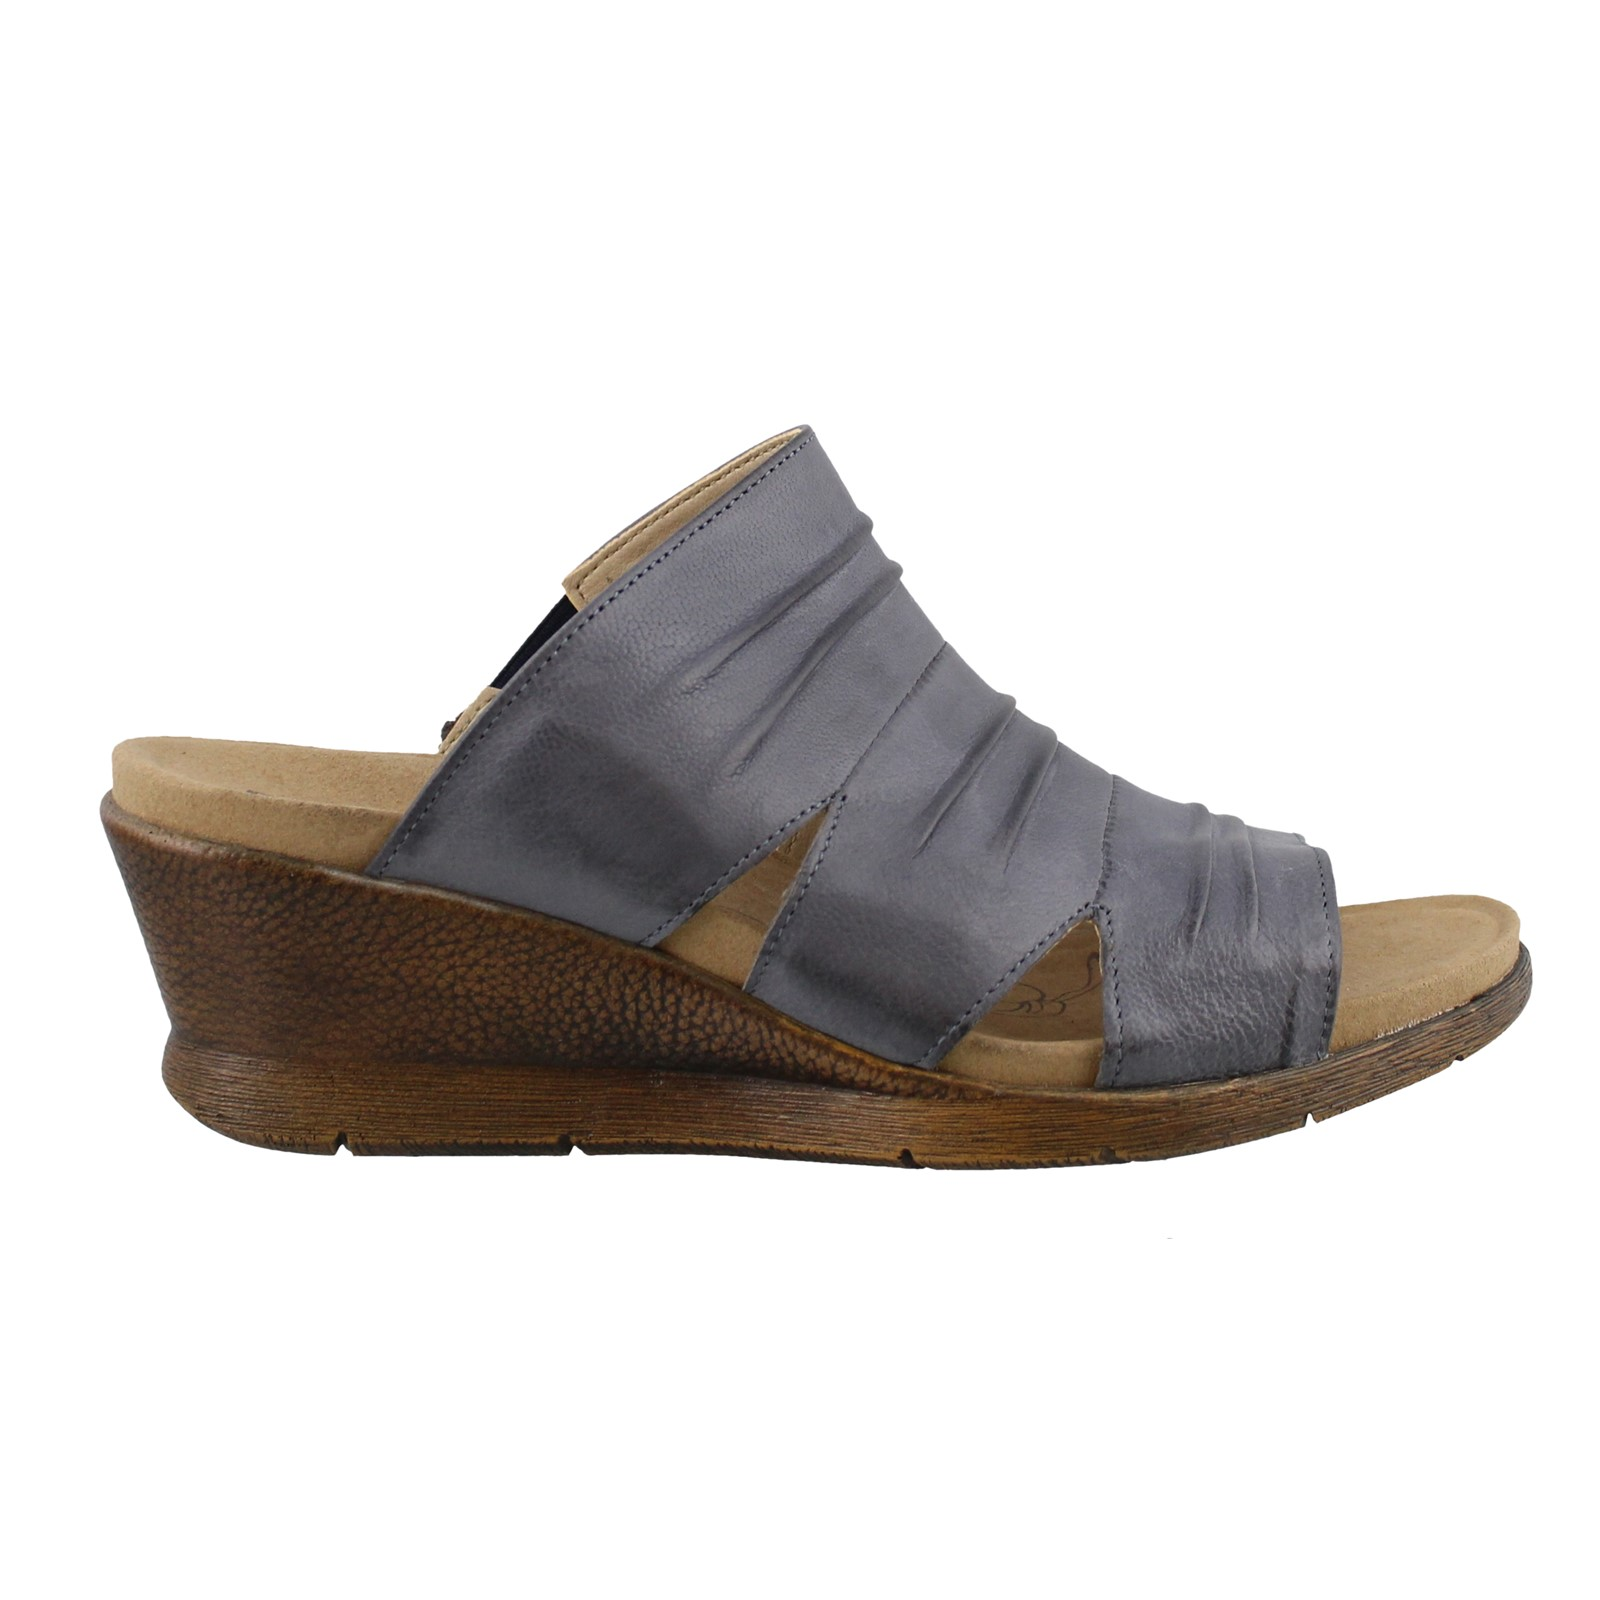 Women's Romika, Nevis 02 Low Heel Wedge Sandals